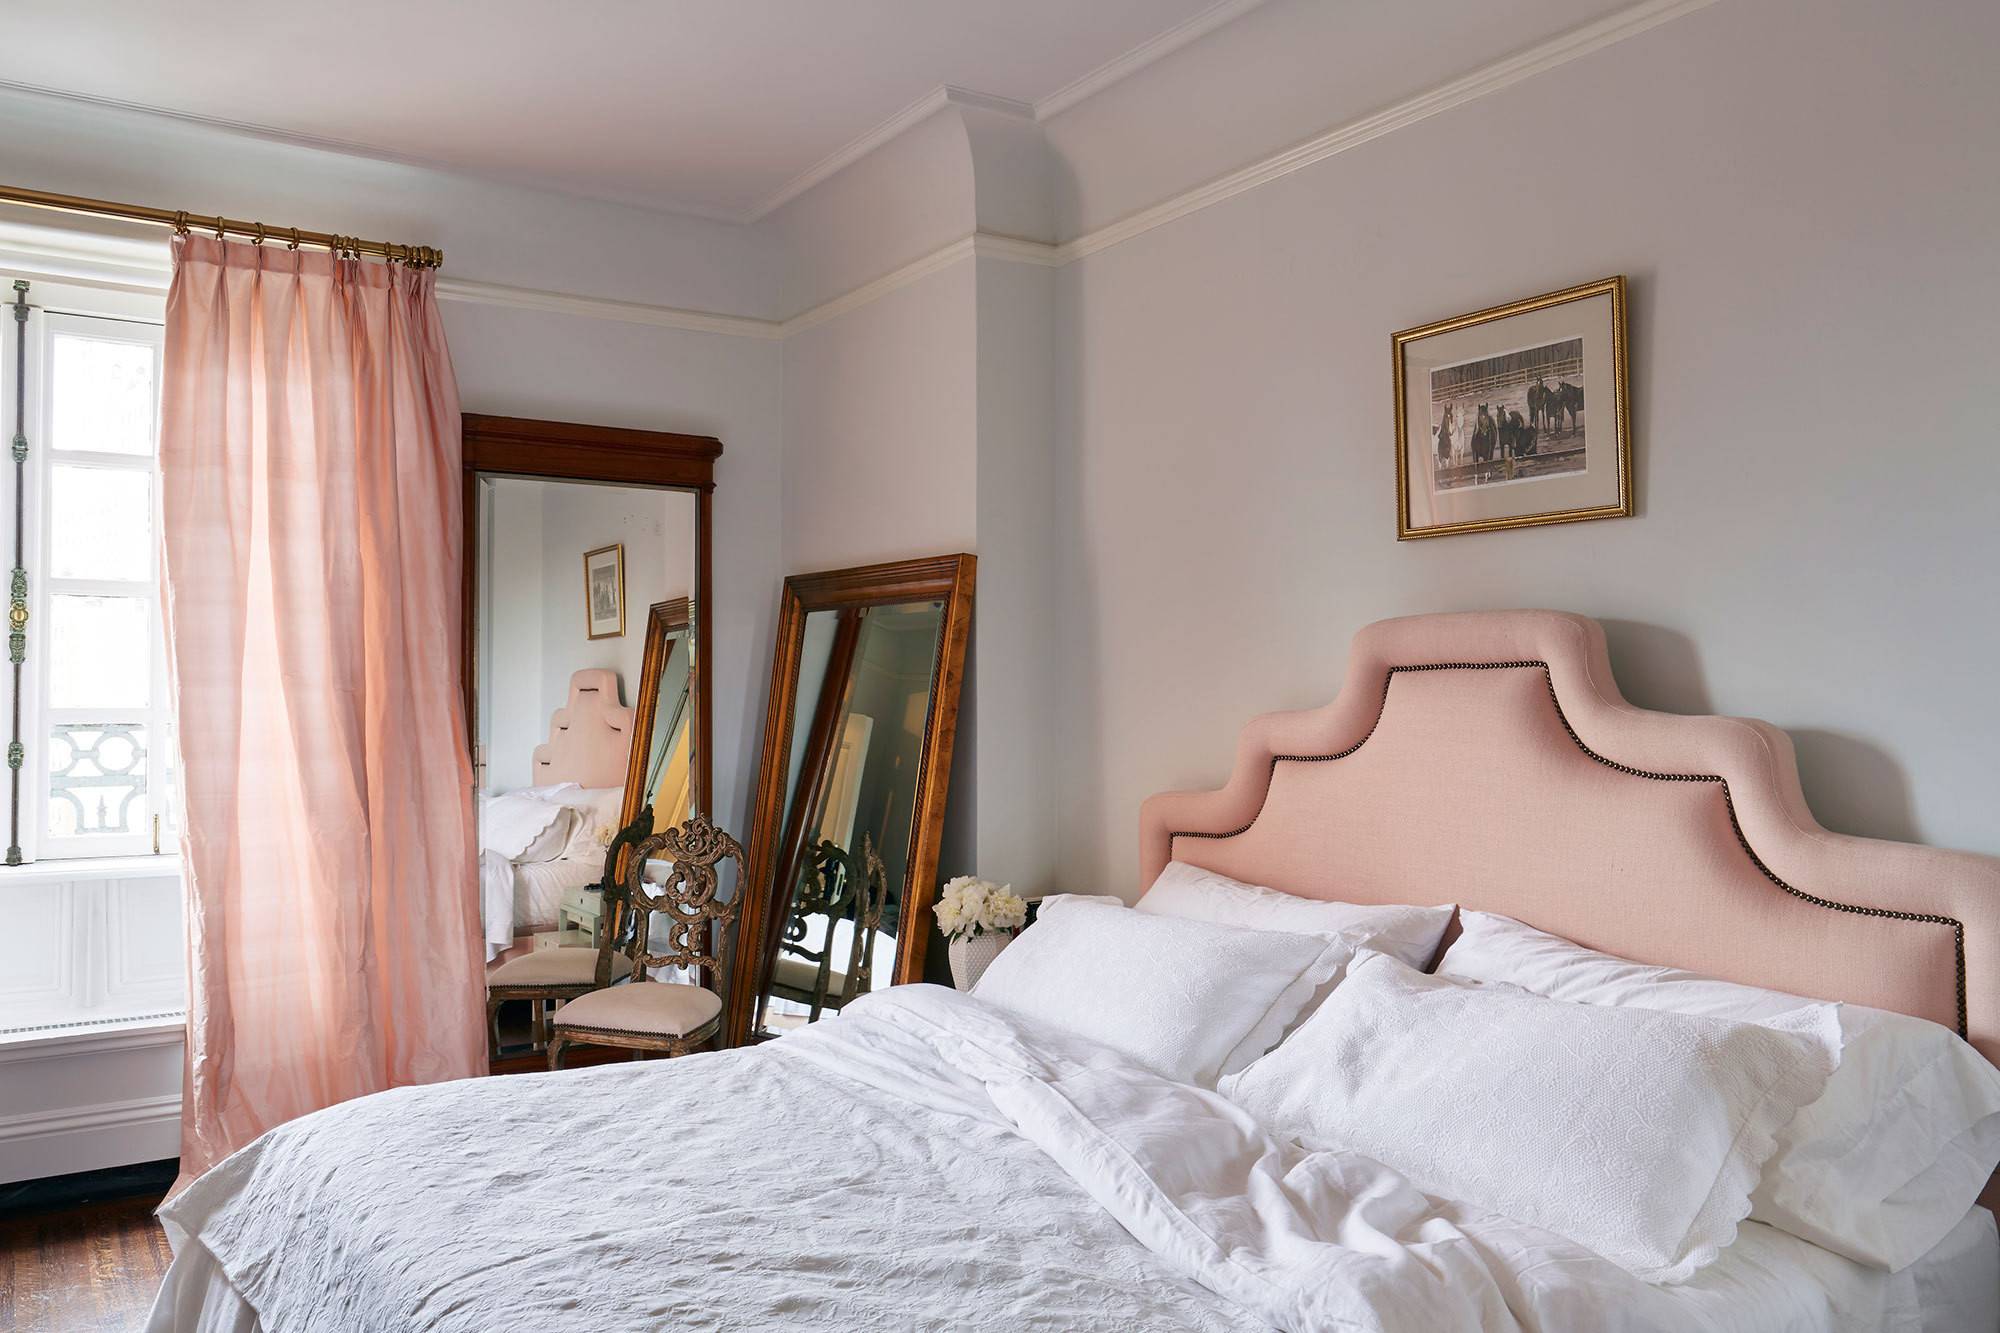 The master bedroom's pink drapery and upholstered headboard are accented with gold finishes and rich, hardwood floors. Two large mirrors sit in a corner to reflect natural light from the windows.